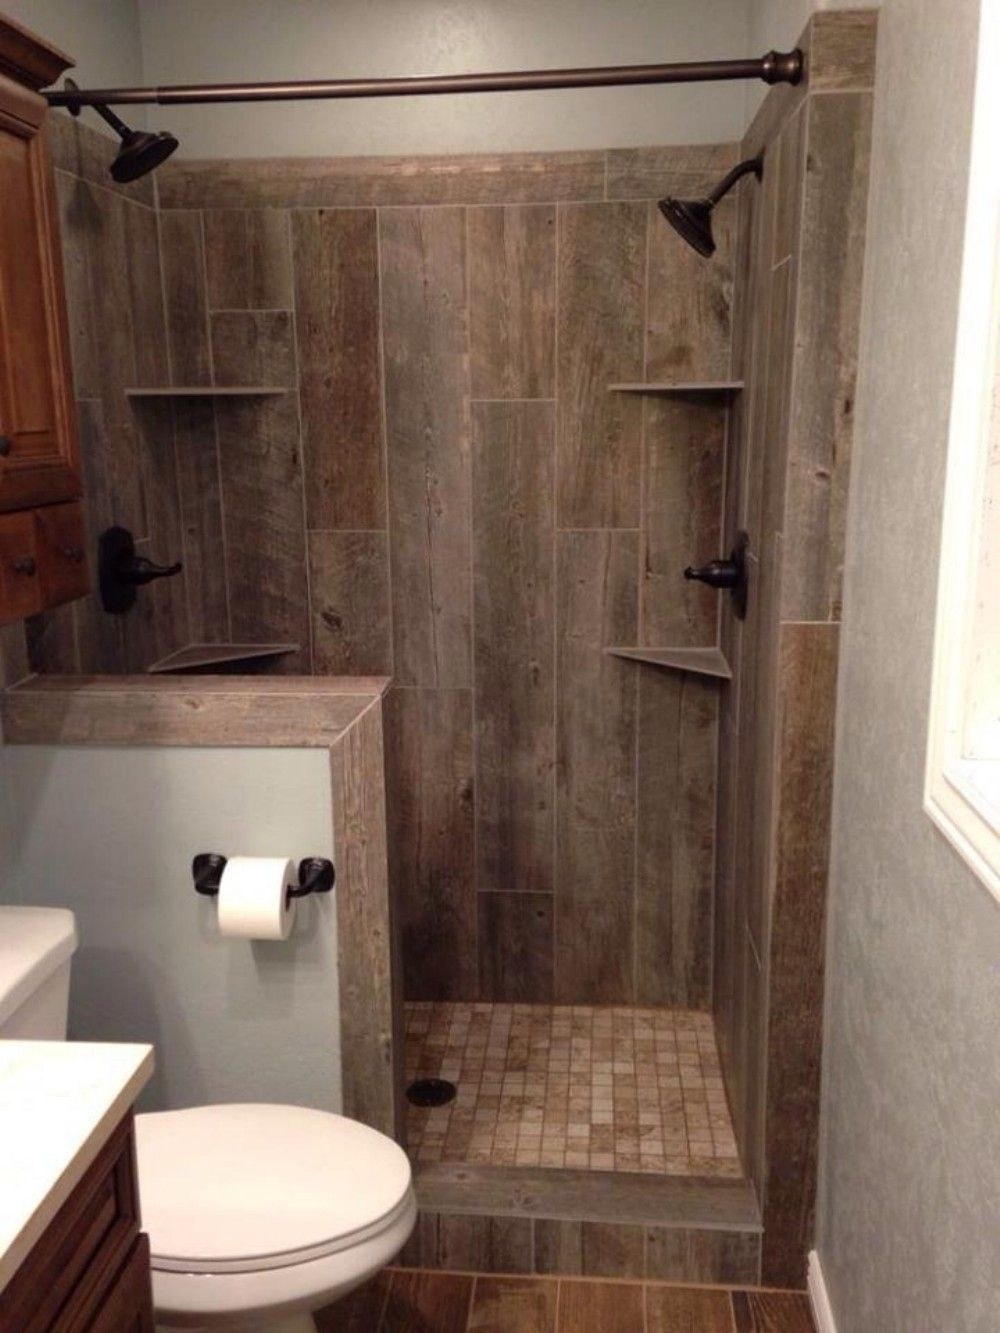 13 Best Bathroom Remodel Ideas & Makeovers Design  Master Delectable Pictures Of Small Bathroom Makeovers Inspiration Design